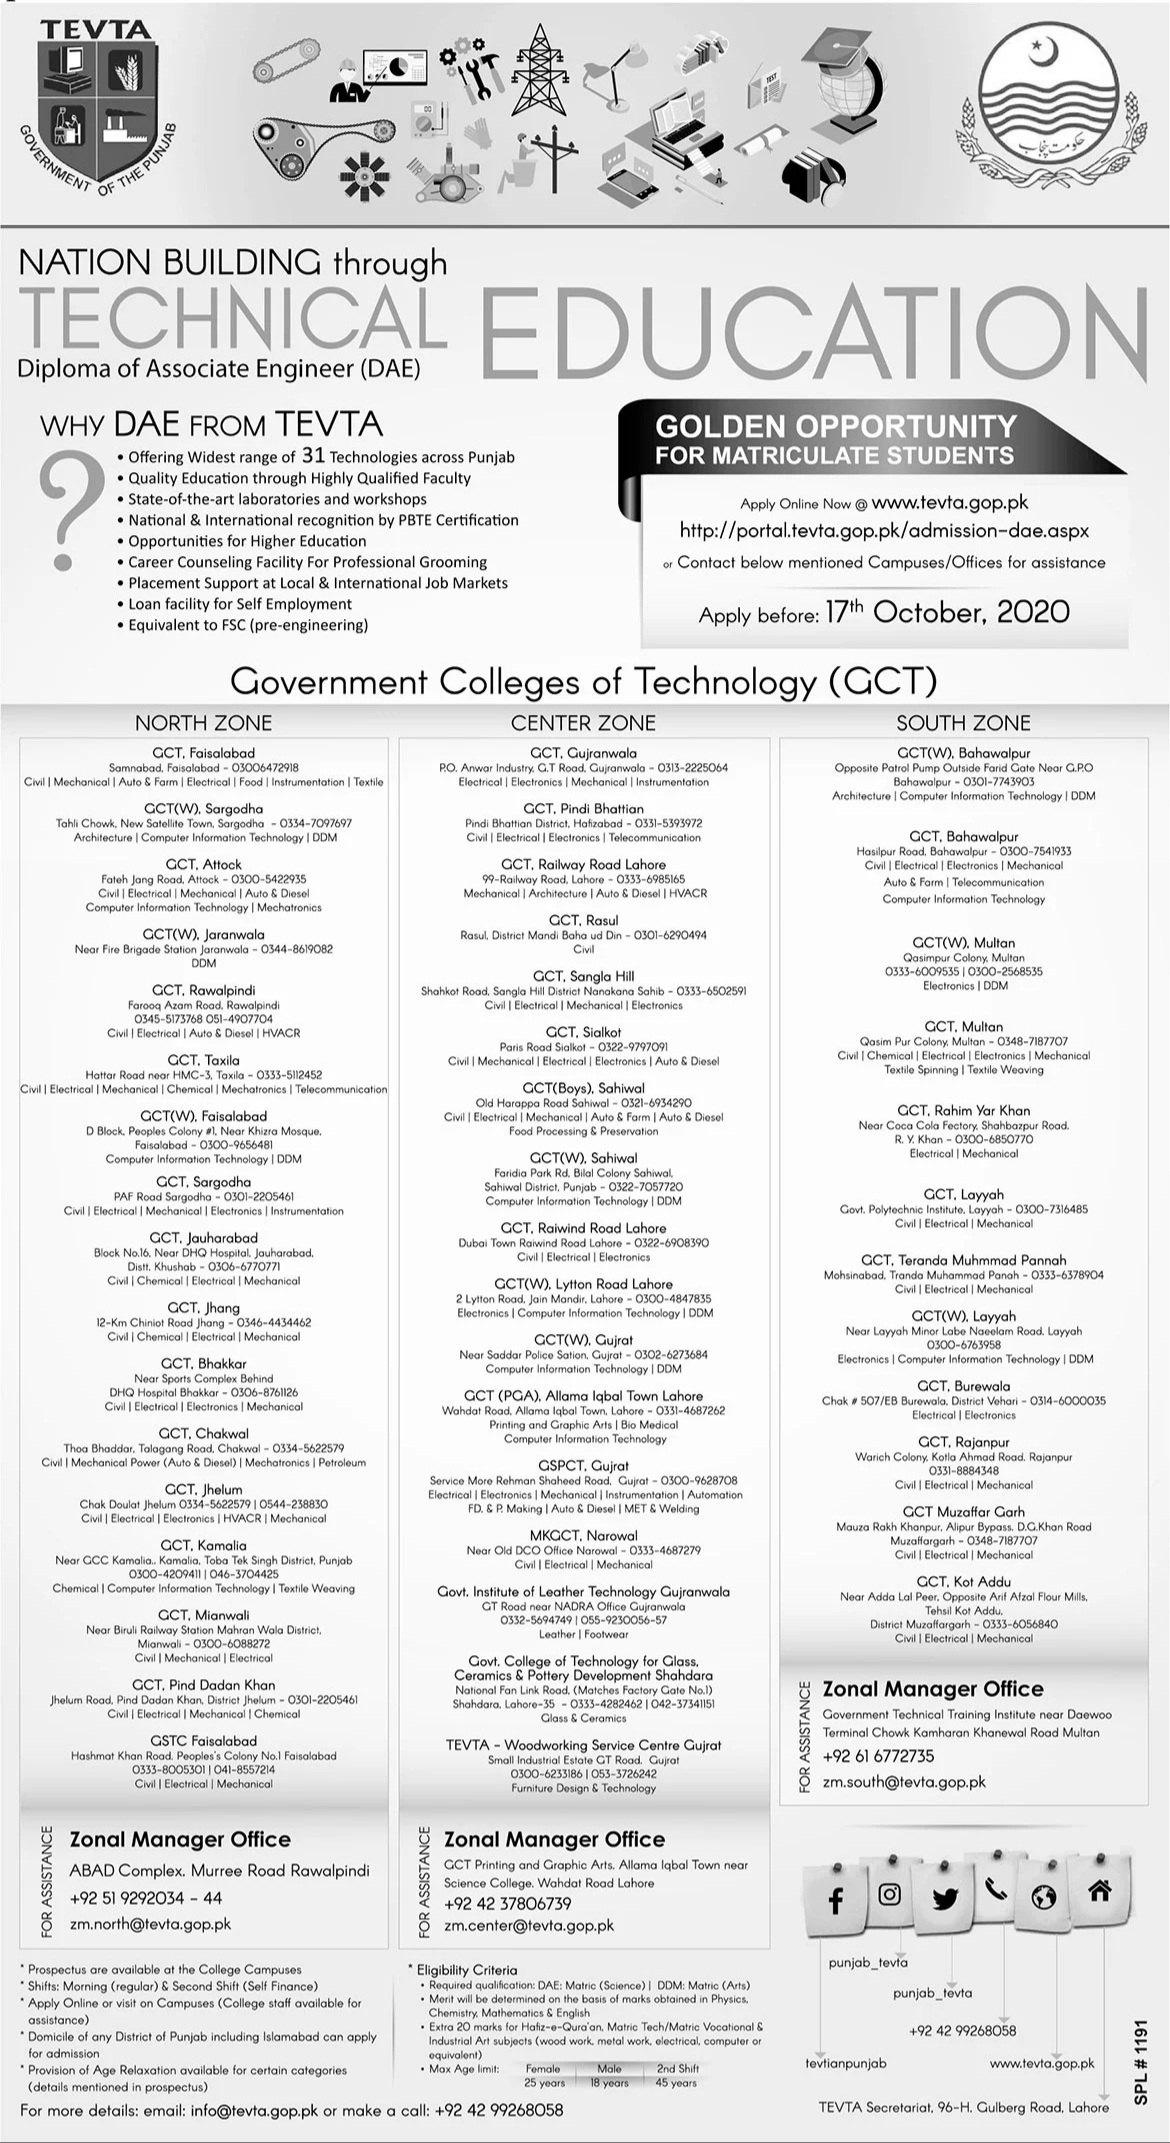 DAE Admissions in TEVTA Government Colleges of Technology (GCT)